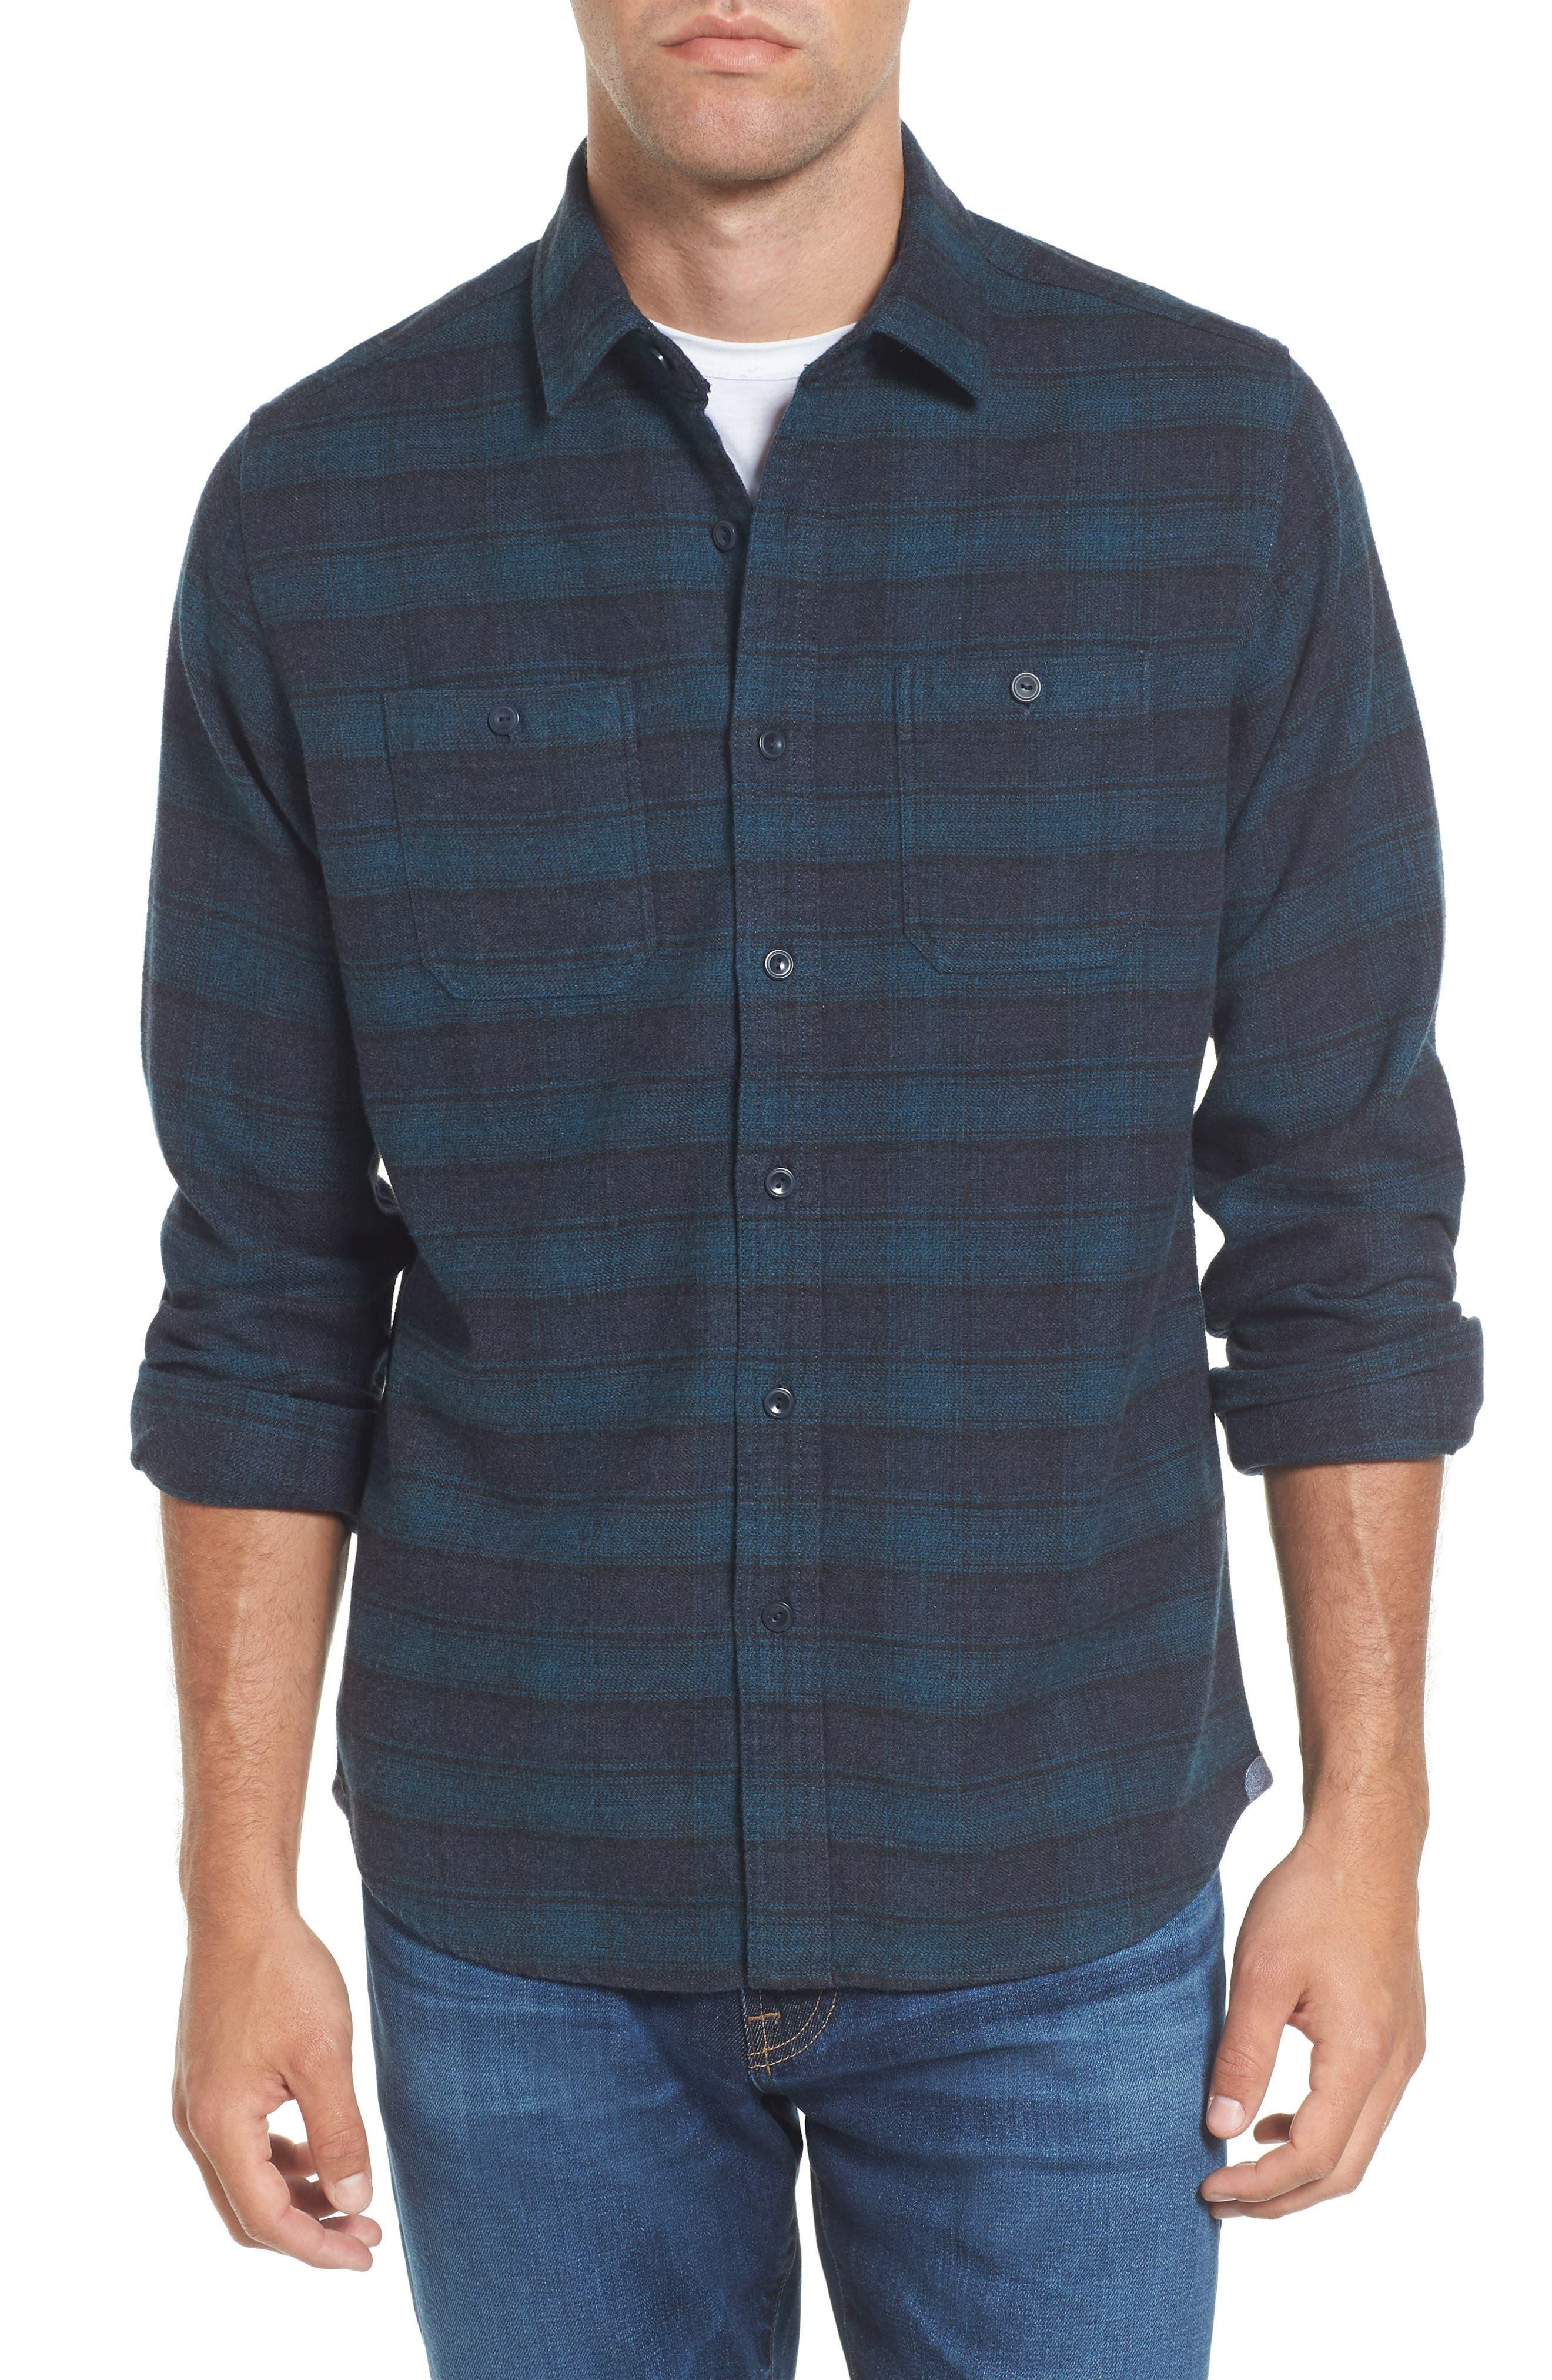 Cortland Heritage Modern Fit Flannel Sport Shirt,                             Main thumbnail 1, color,                             341